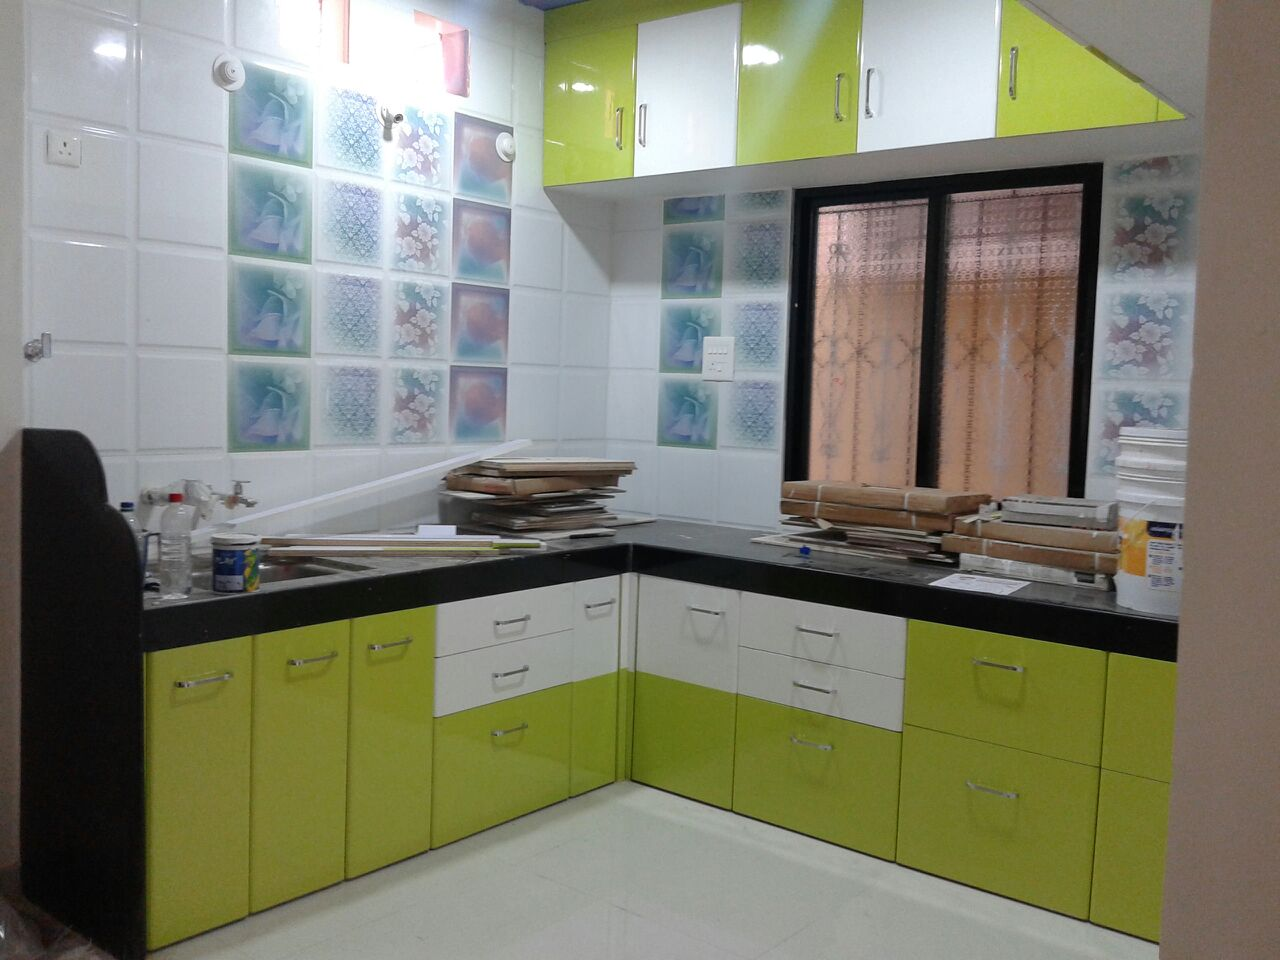 7887880140 by steel life kitchens and rail pvt ltd modular kitchen modular kitchen in pune modular kitchen manufacturers in pune modular kitchen